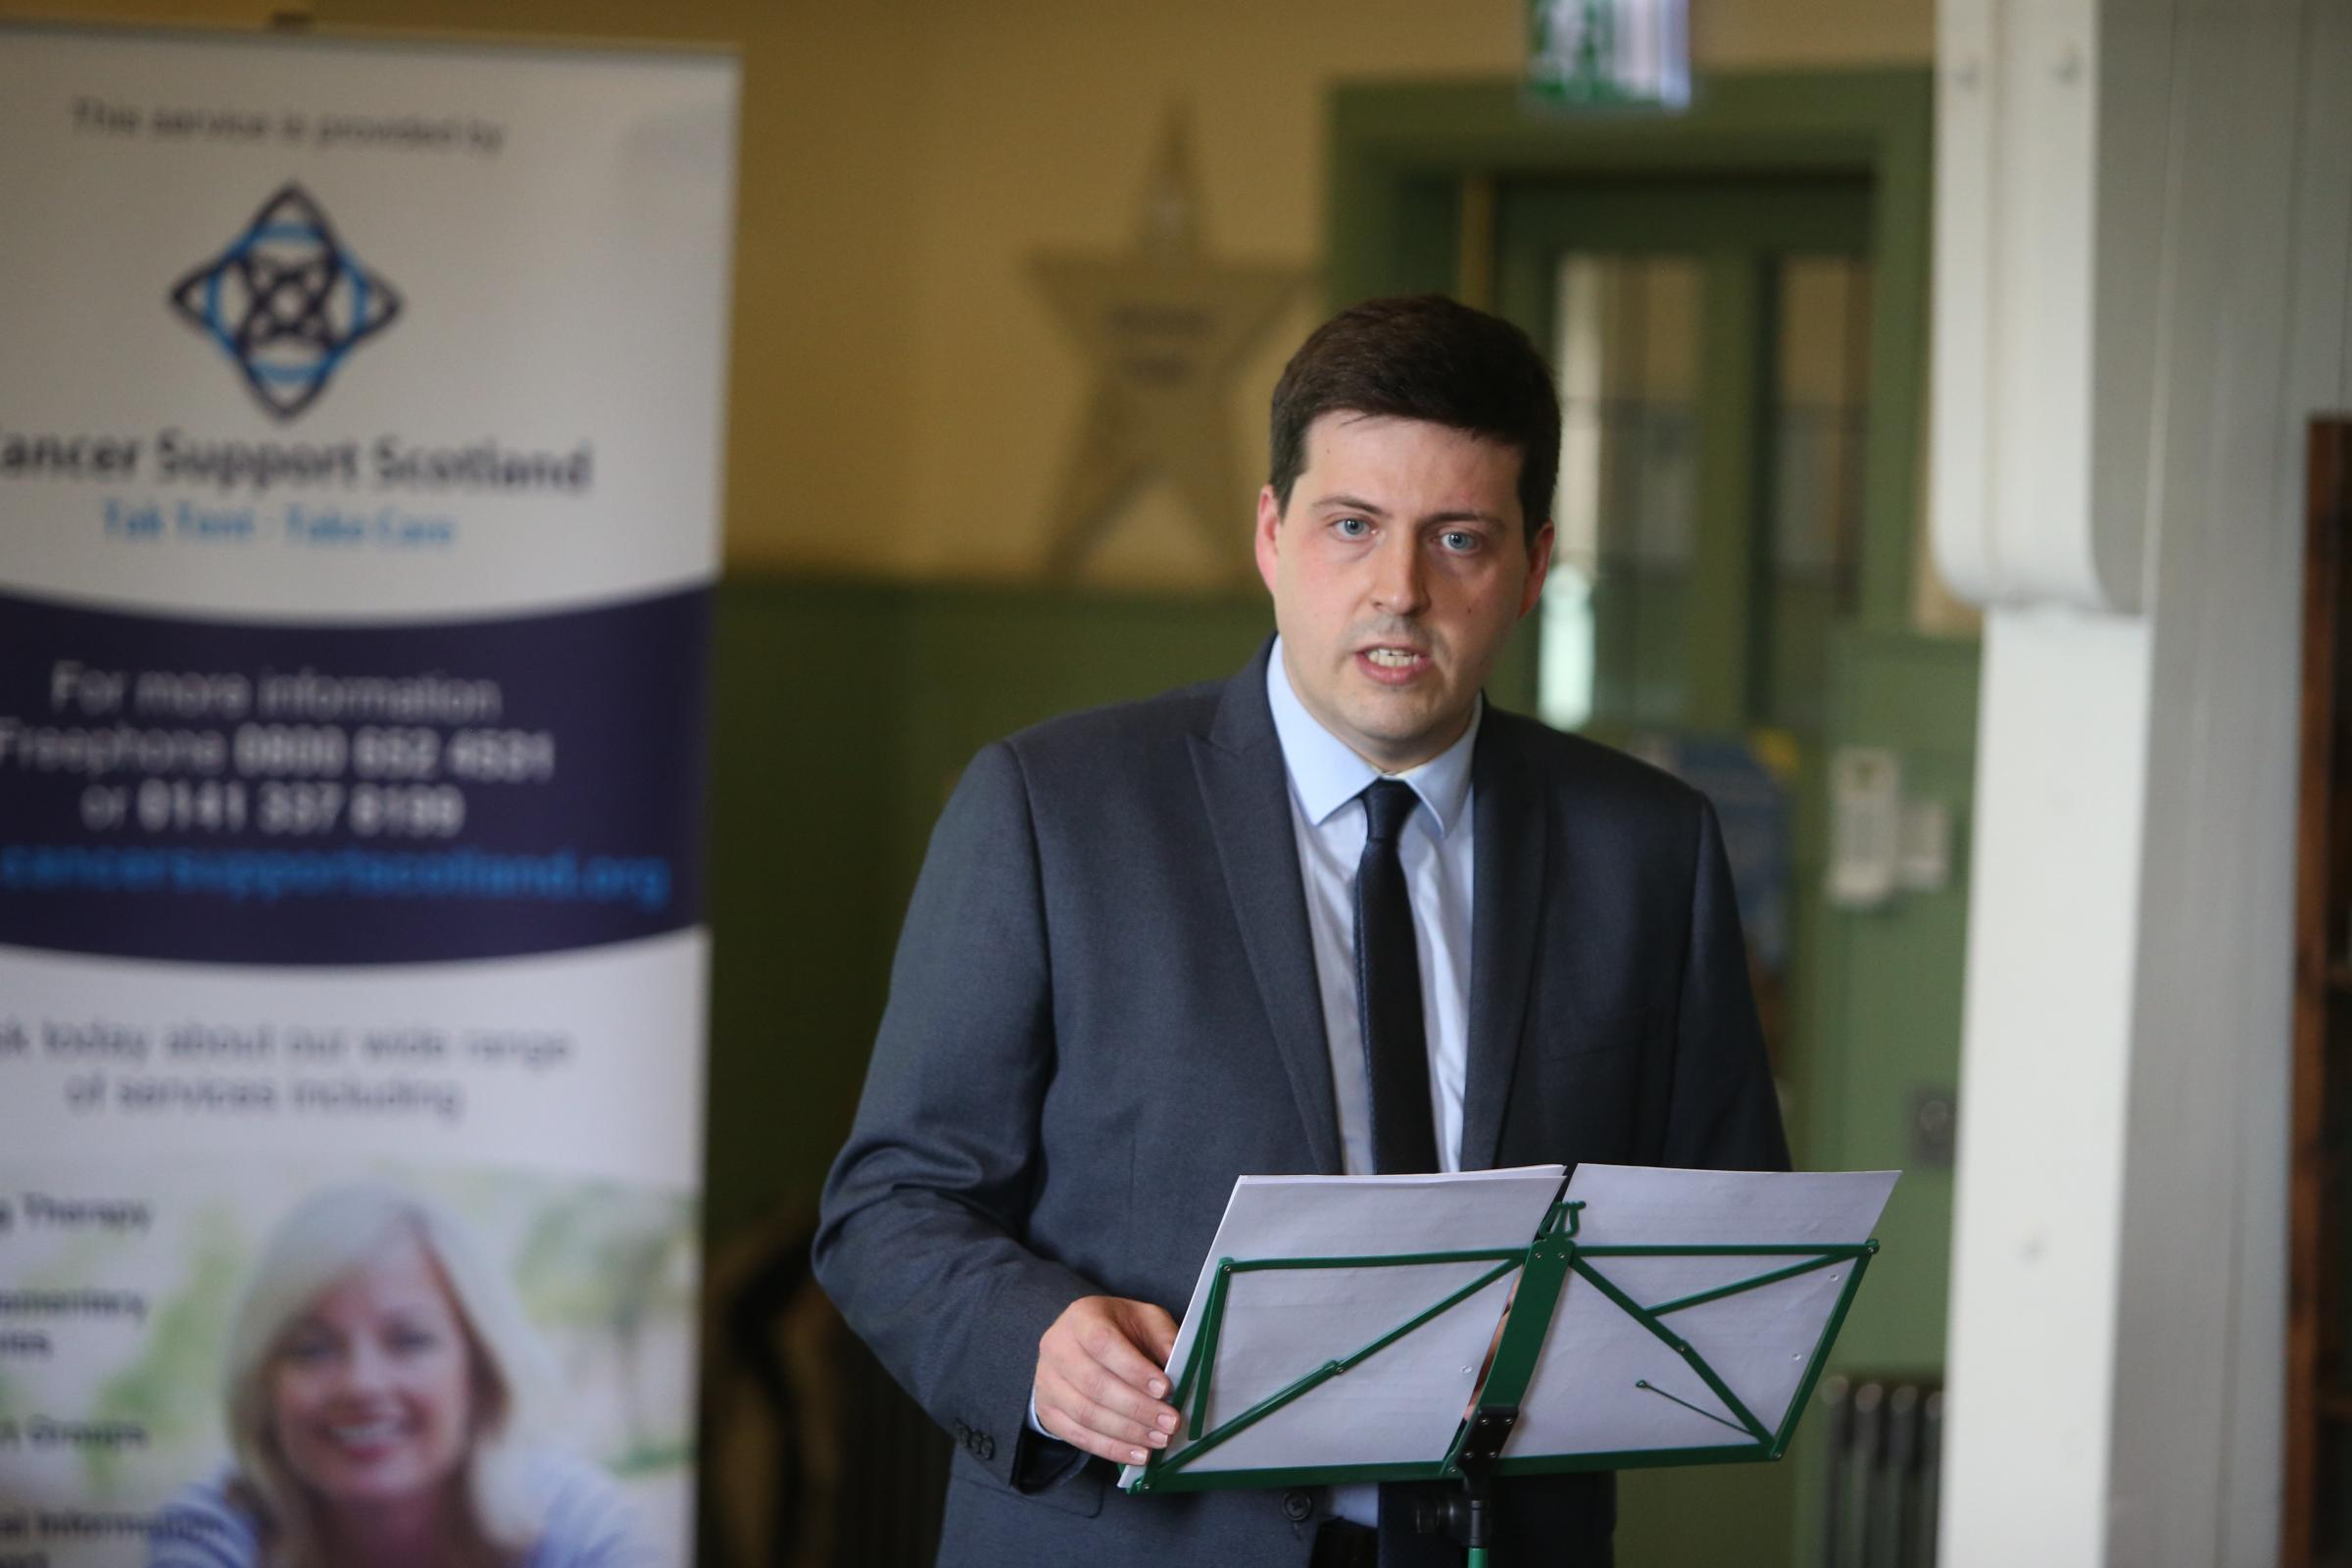 Business Minister Jamie Hepburn hit out at Universal Credit. Photograph: Colin Templeton